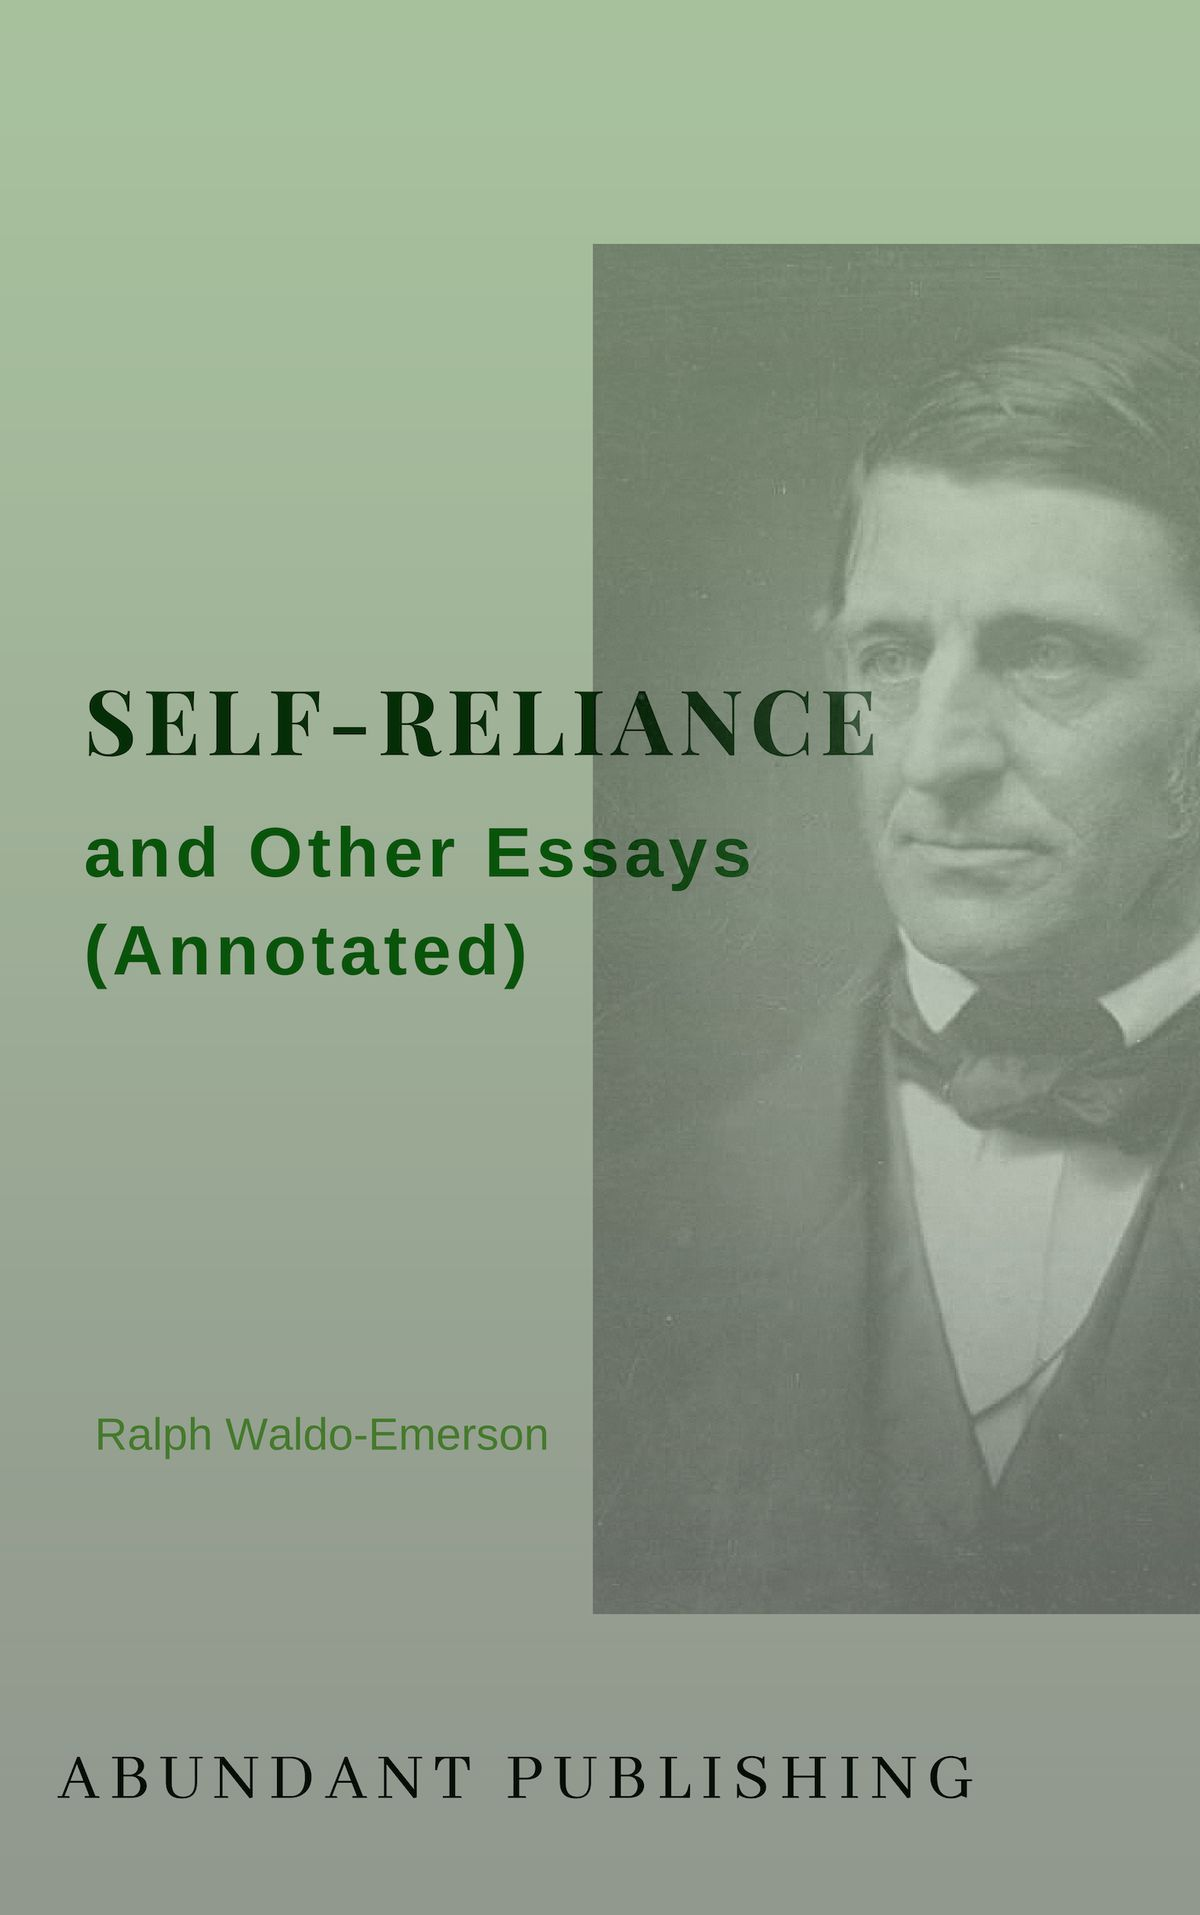 005 Self Reliance And Other Essays Annotated Essay Formidable Ekşi Self-reliance (dover Thrift Editions) Pdf Epub Full